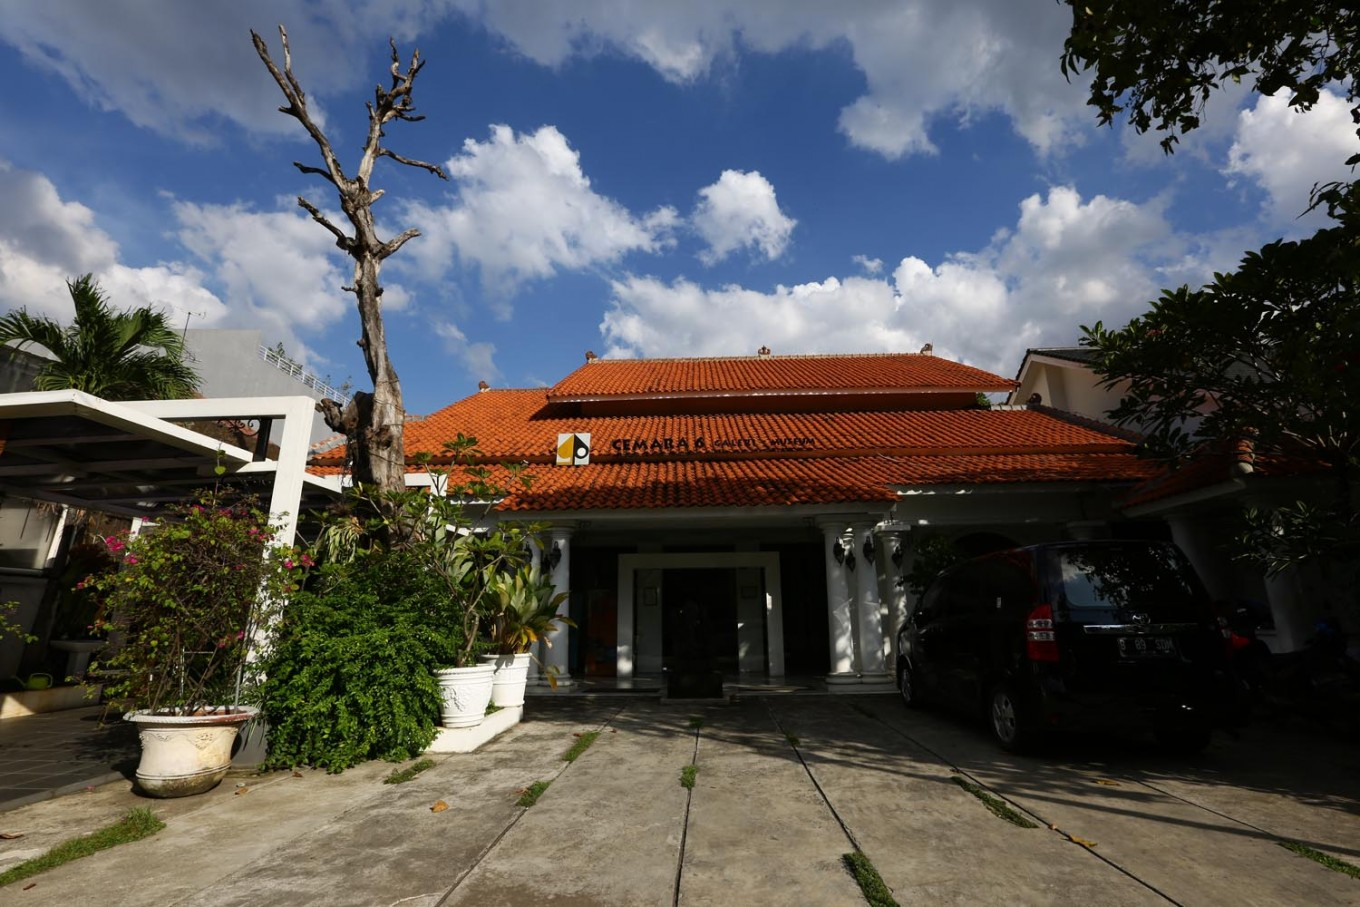 The entrance gate of Cemara 6 Gallery-Museum. The museum houses more than 150 paintings by Indonesian painter Salim.